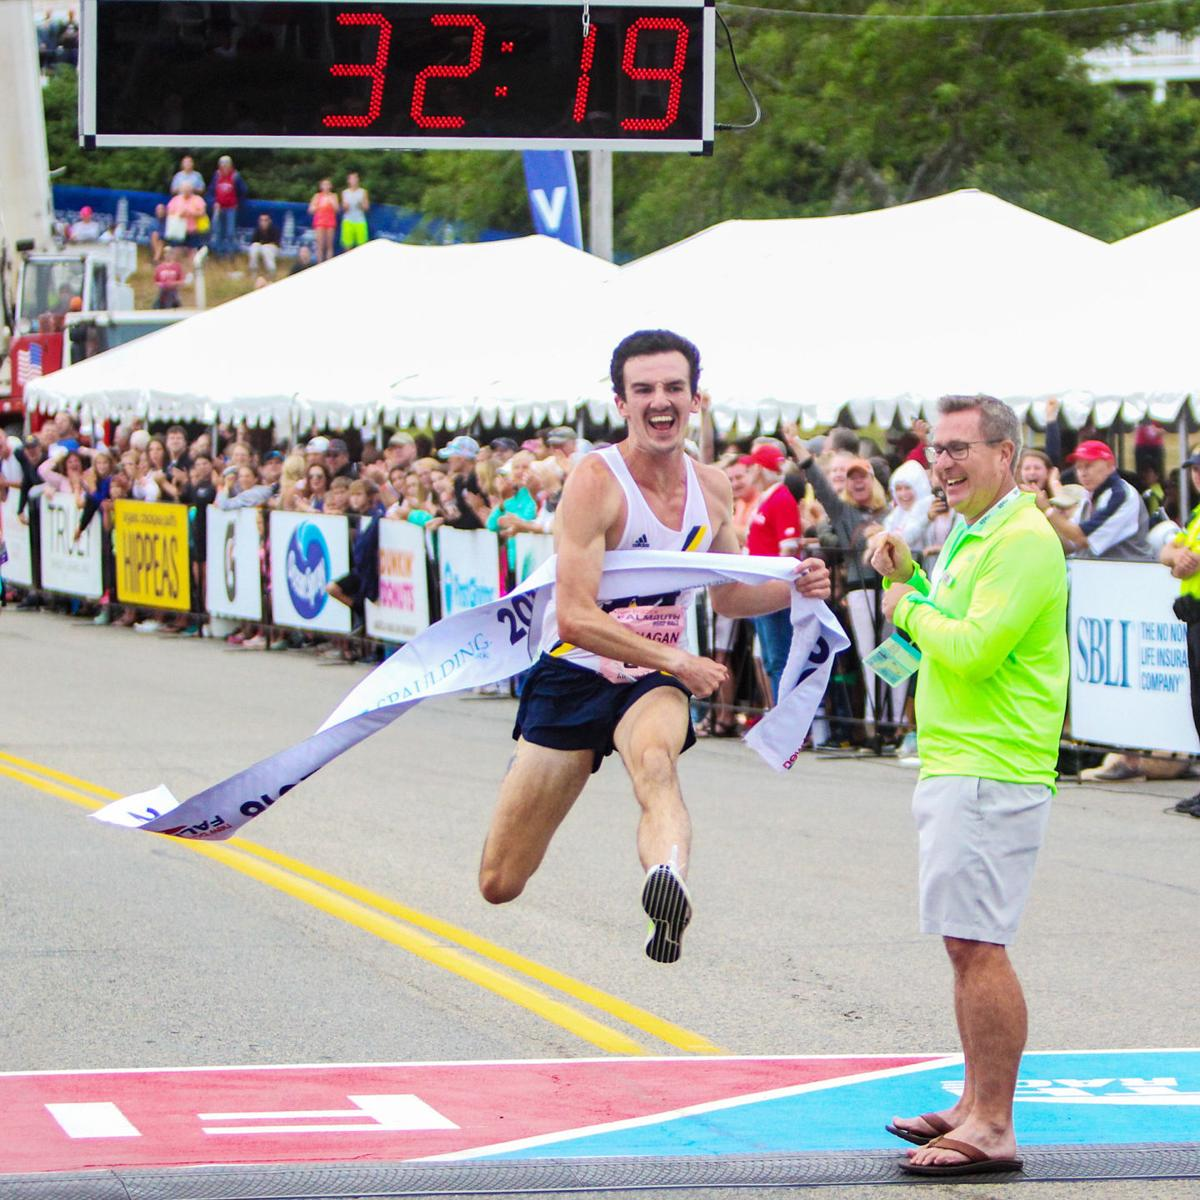 Falmouth Road Race - August 19, 2018